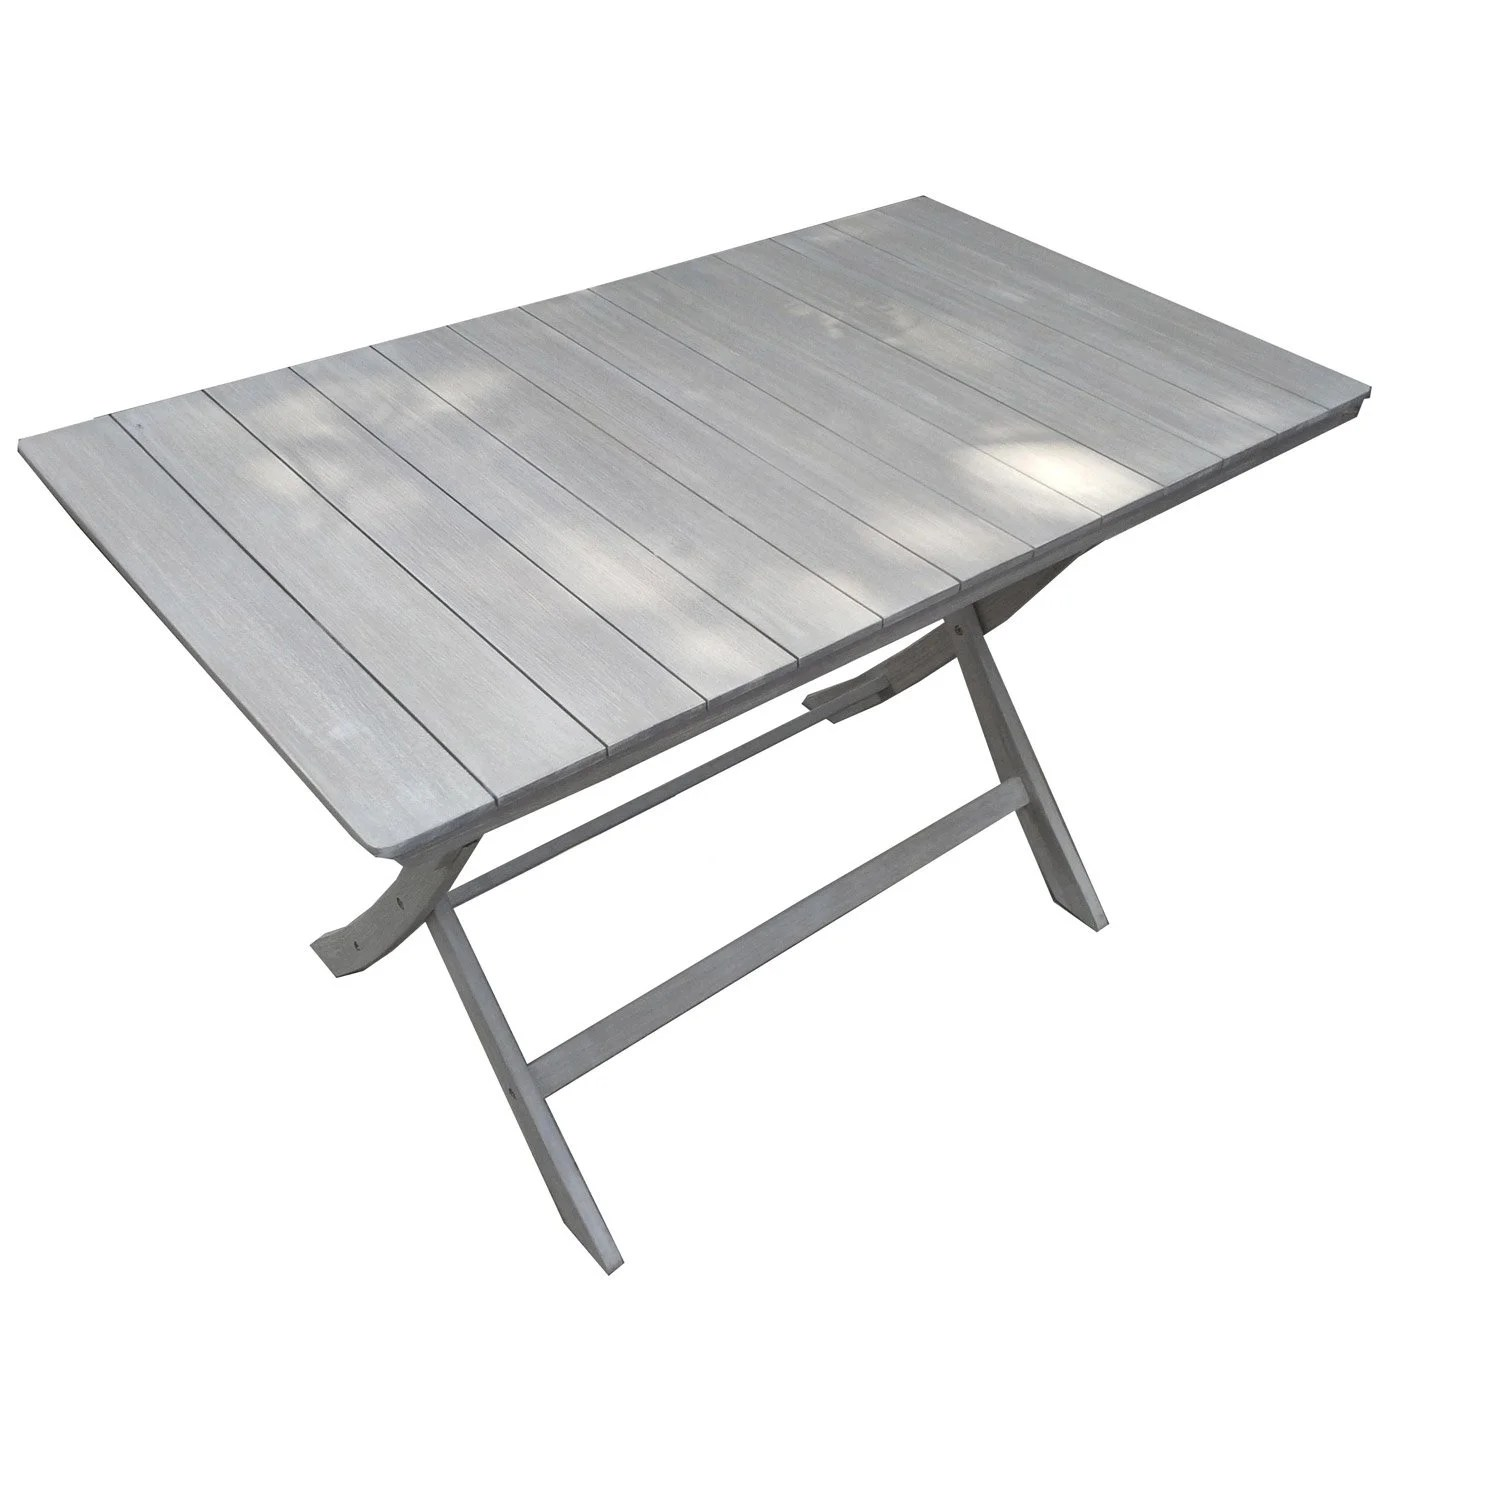 Table Pliable Leroy Merlin Table De Jardin Naterial Portofino Rectangulaire Gris 4